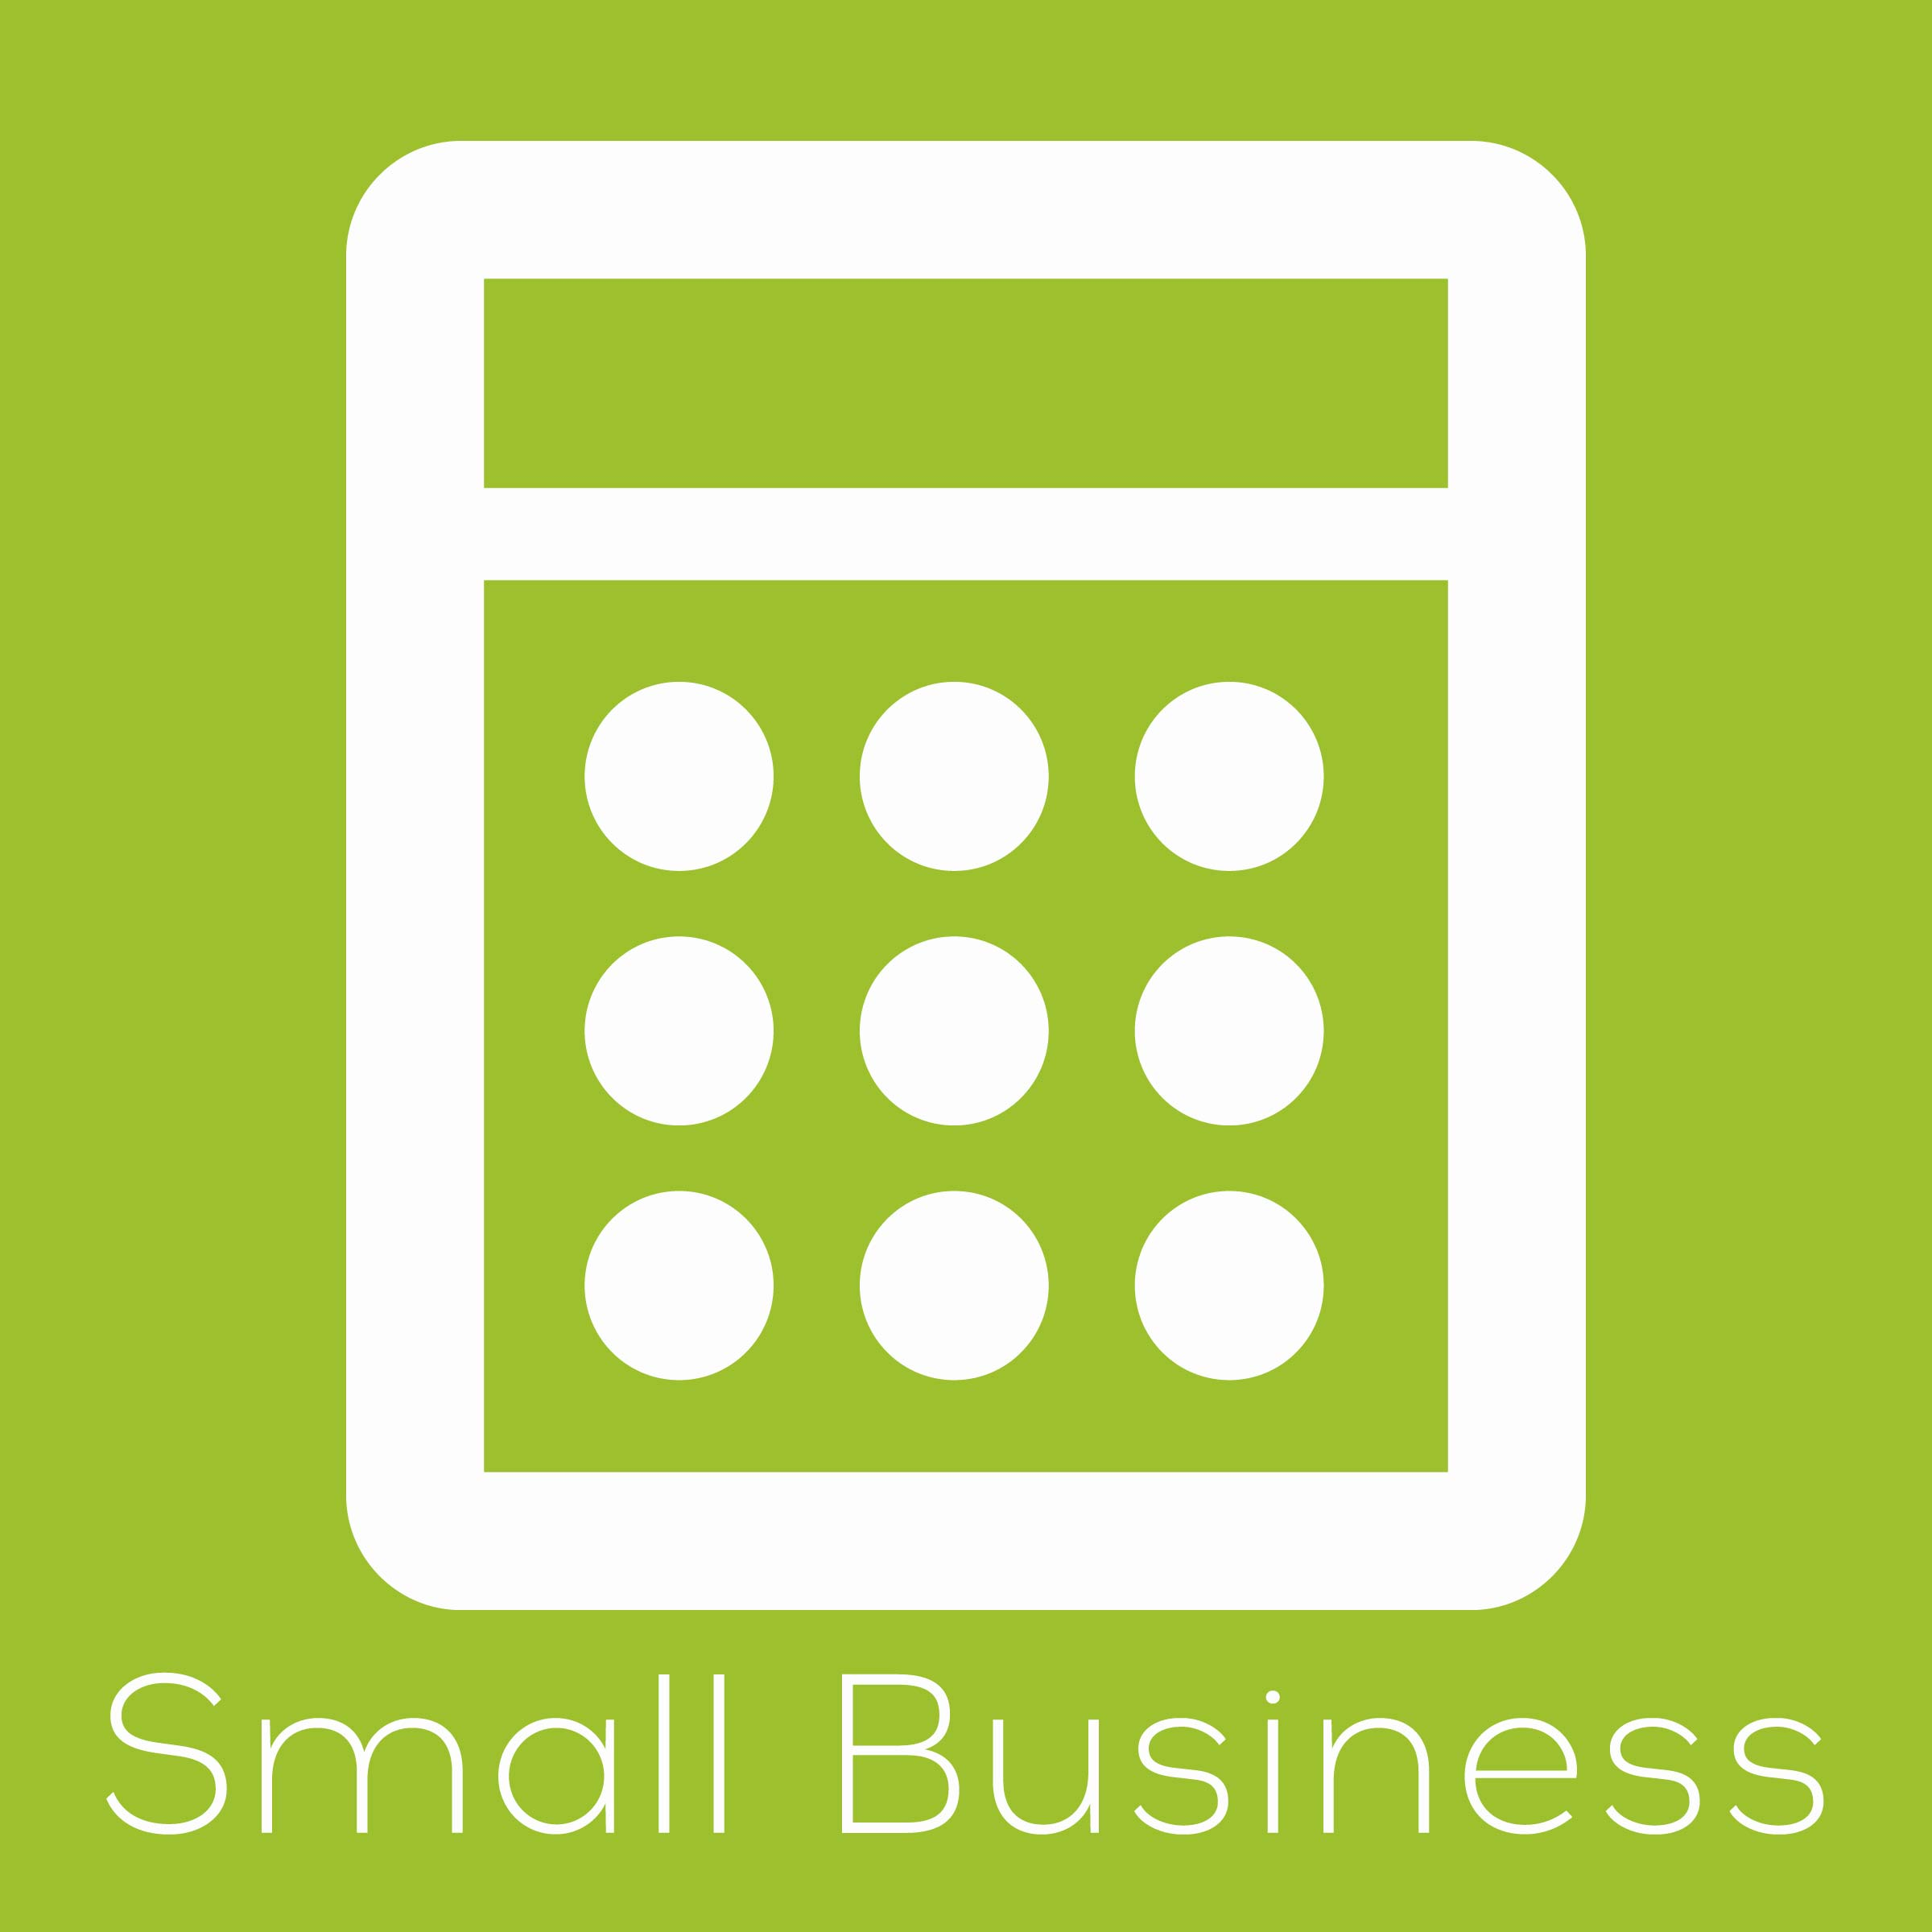 Small Business Training